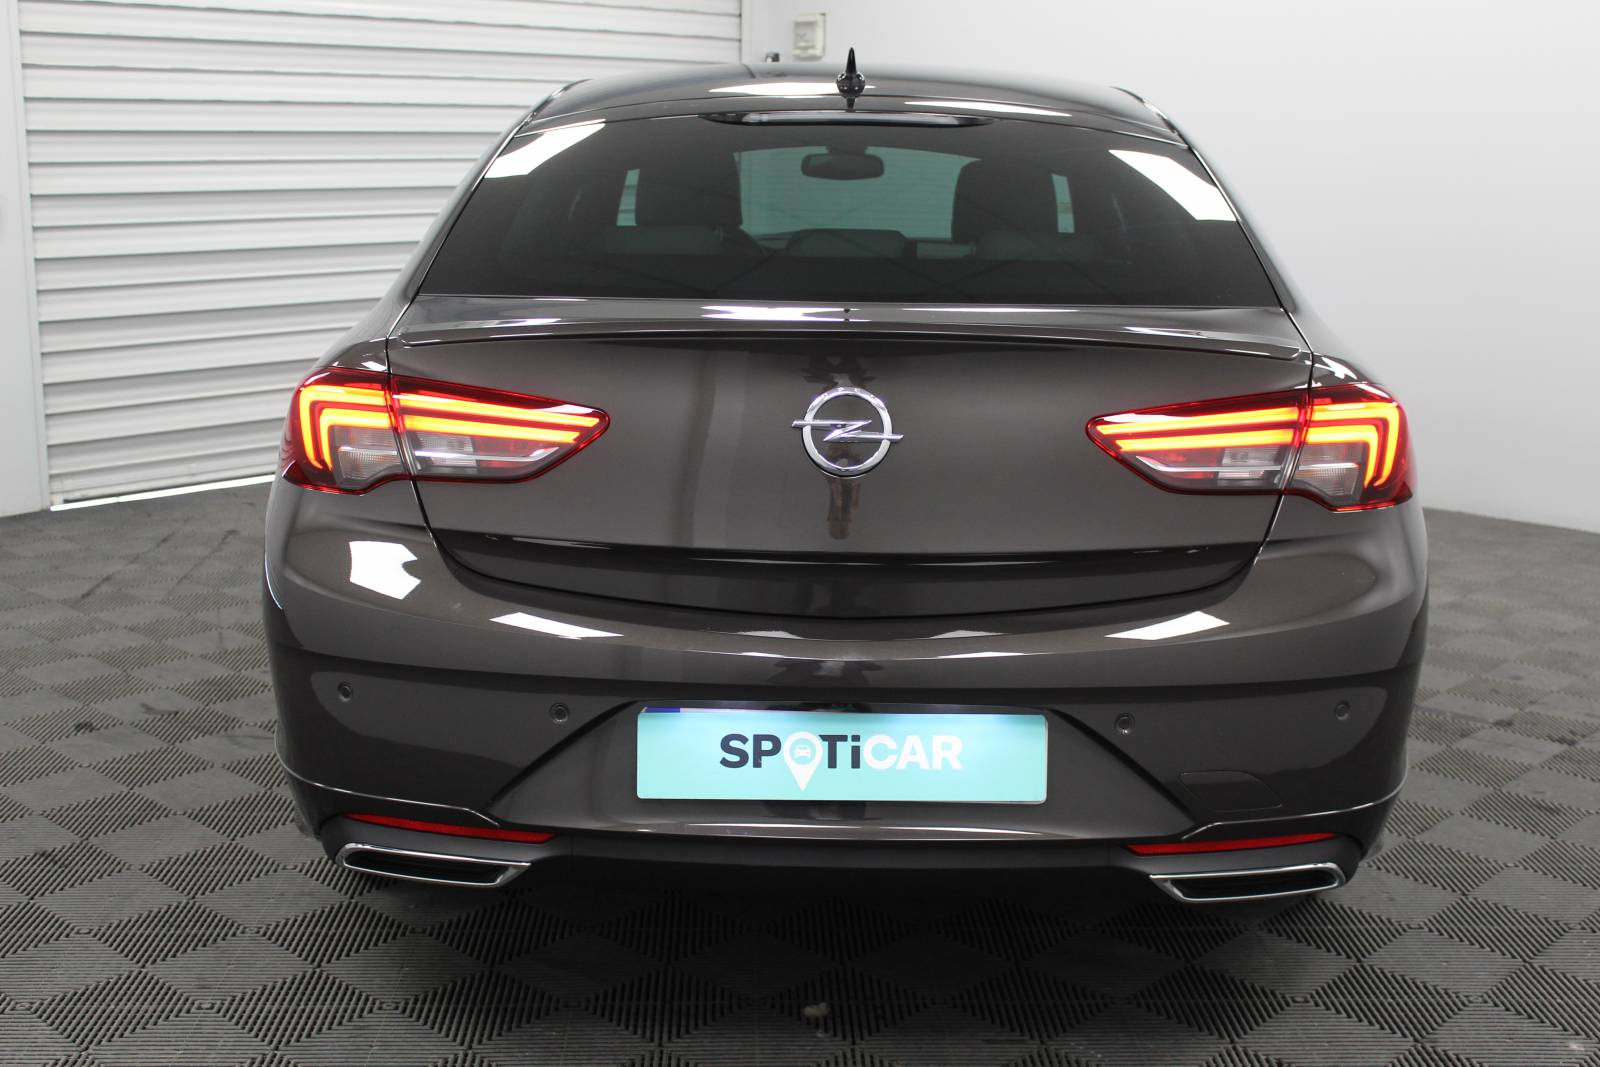 OPEL Insignia Grand Sport 2.0 Diesel 174 ch BVA8 - véhicule d'occasion - Site Internet Faurie - Opel - Faurie Motor Charente Angouleme - 16160 - Gond-Pontouvre - 5